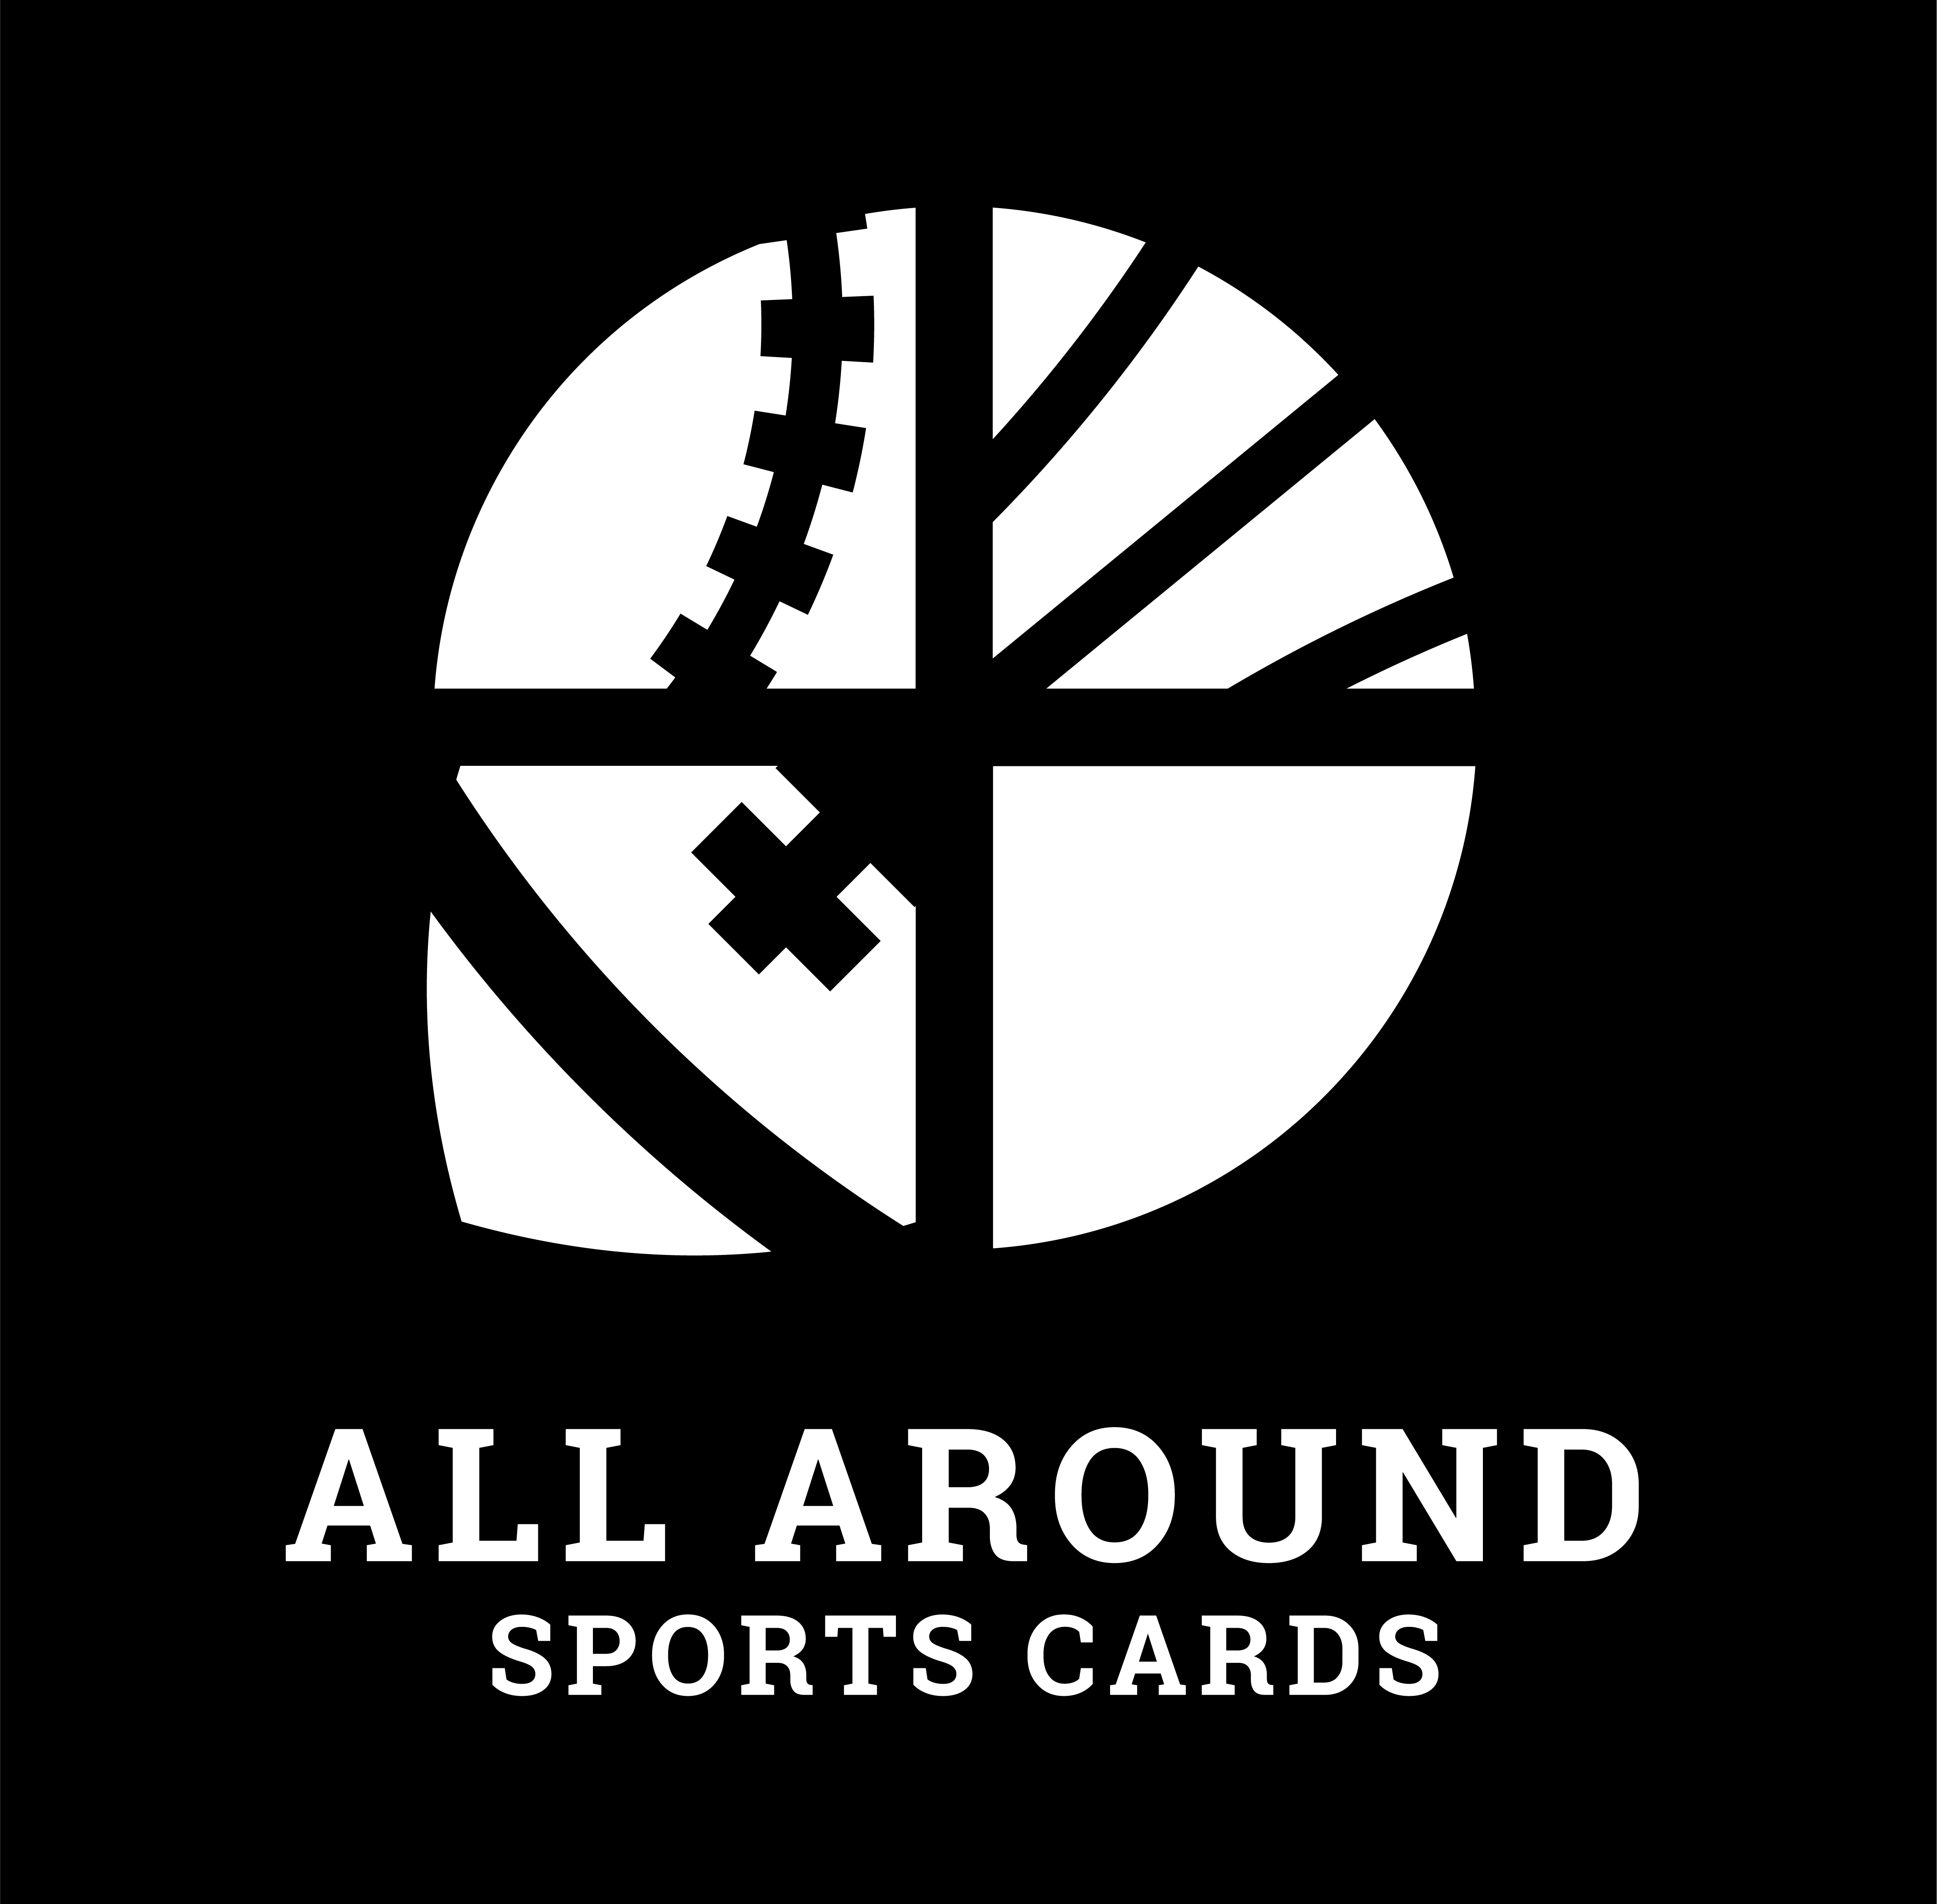 All Around Sports Cards